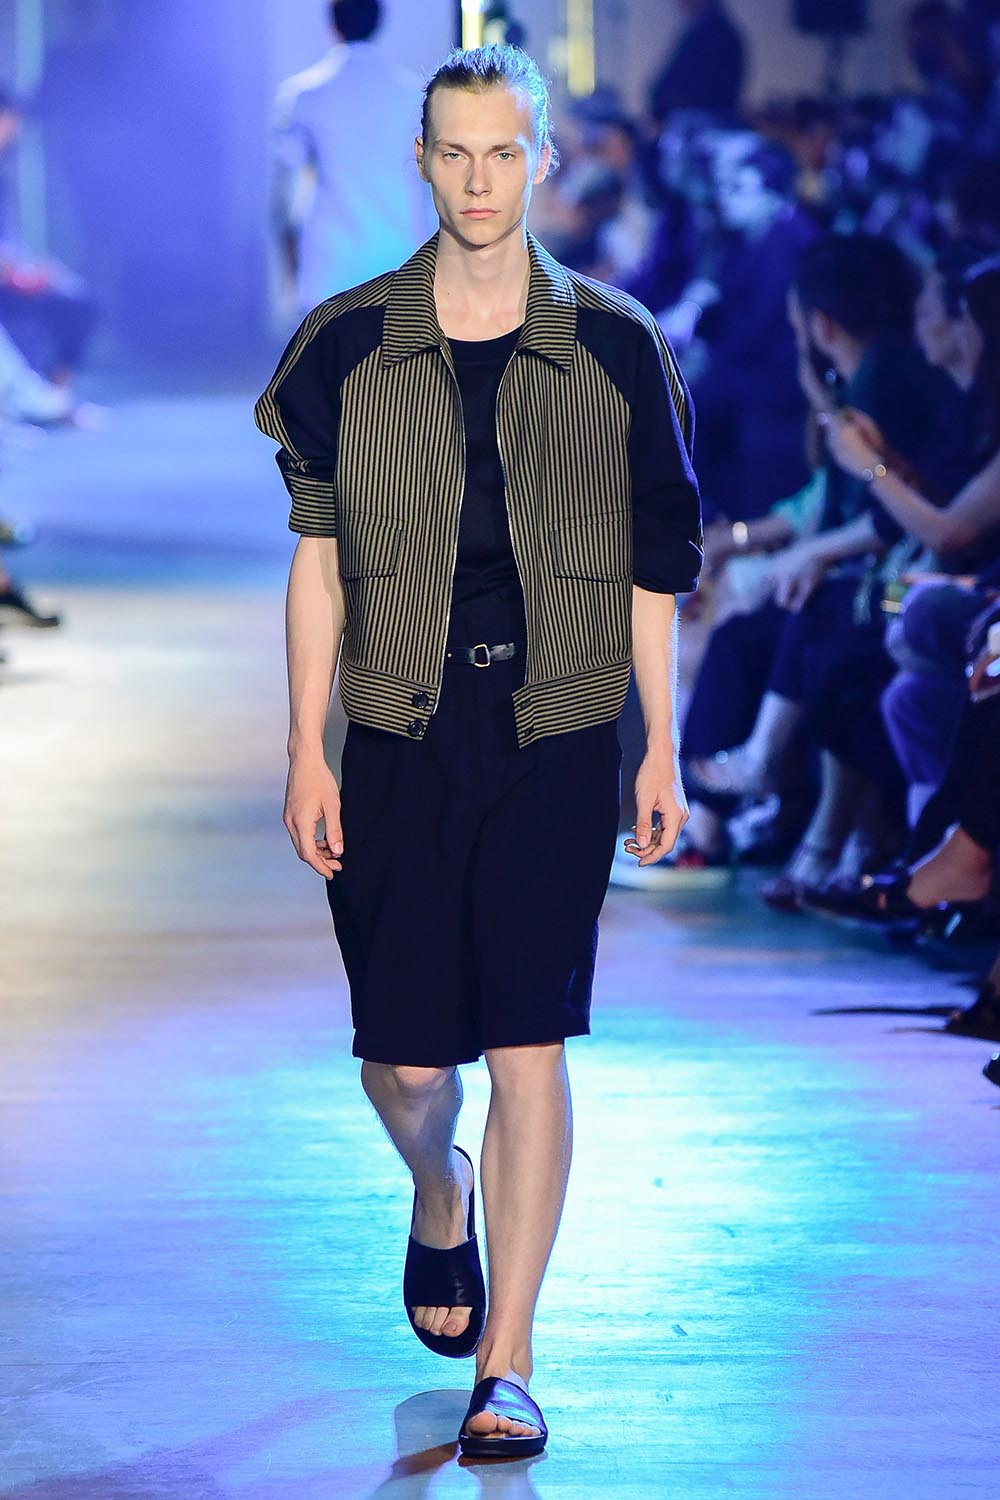 Cerruti 1881 Paris Fashion Week Men's SS19 - Sagaboi - Look 31